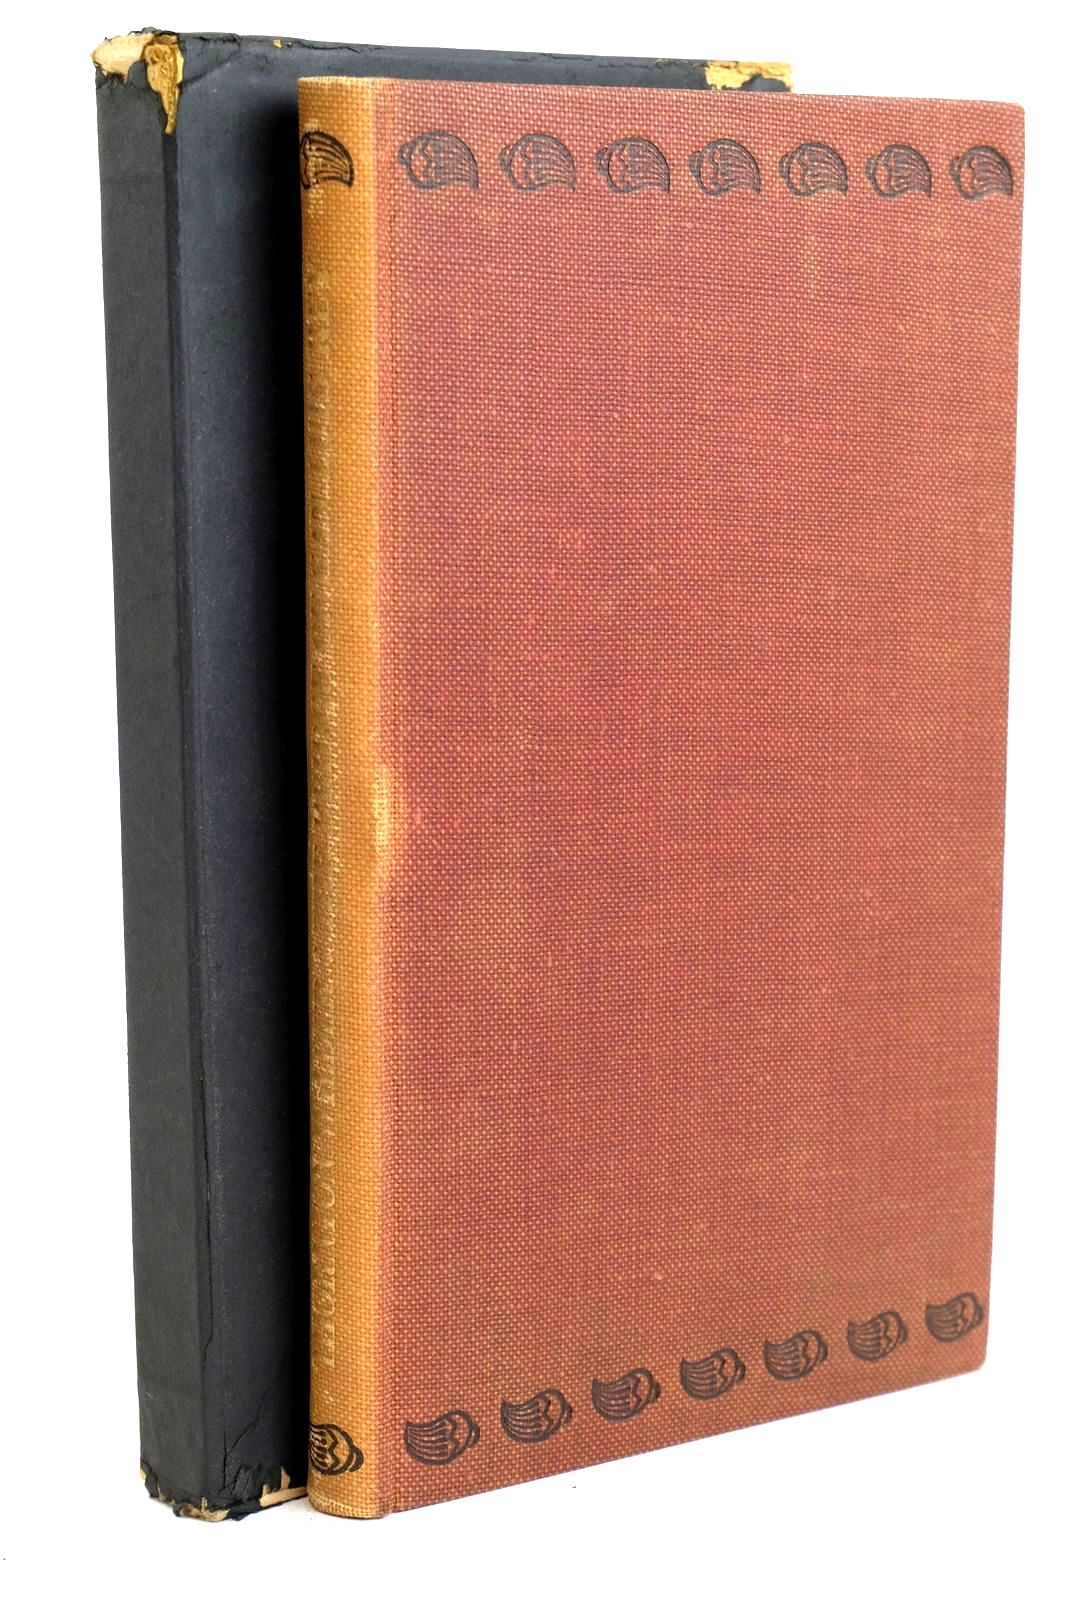 Photo of THE BRIDGE OF SAN LUIS REY written by Wilder, Thornton illustrated by Martin, Frank published by Folio Society (STOCK CODE: 1320564)  for sale by Stella & Rose's Books